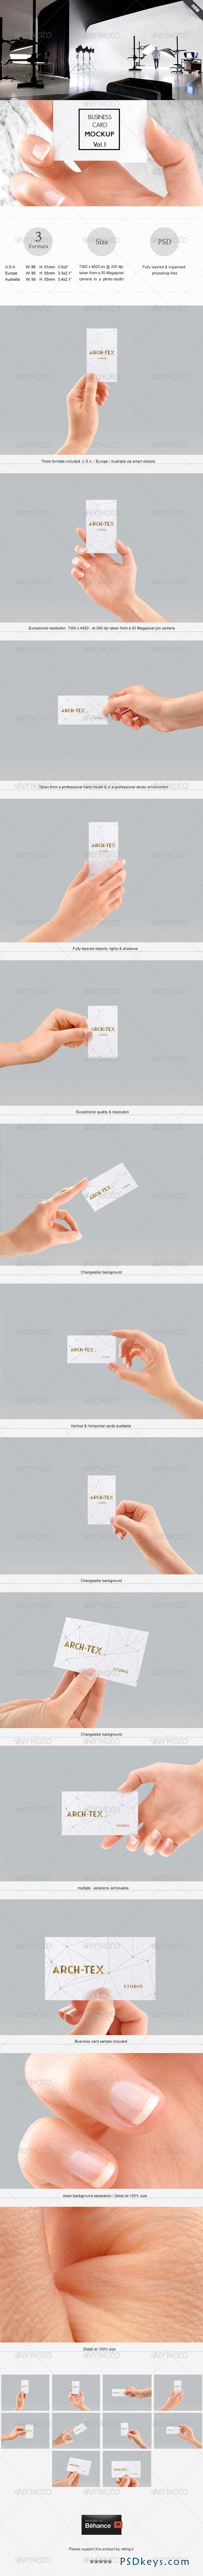 Business Card Mock-up Vol.1 - Hand edition 7839761